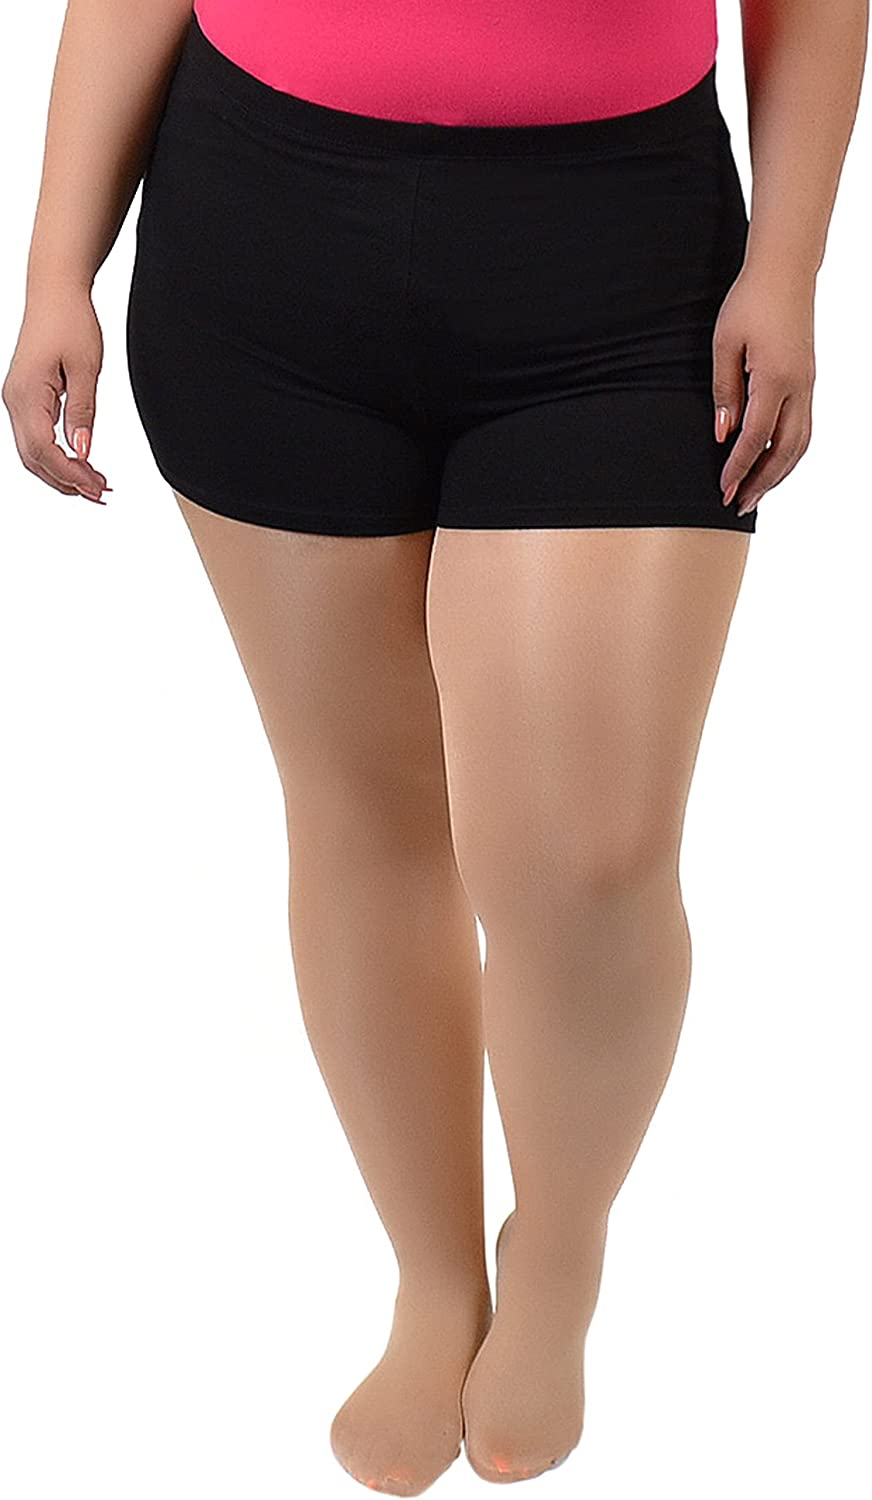 Stretch Max Ranking TOP6 67% OFF is Comfort Women's Shorts Booty Cotton Teamwear